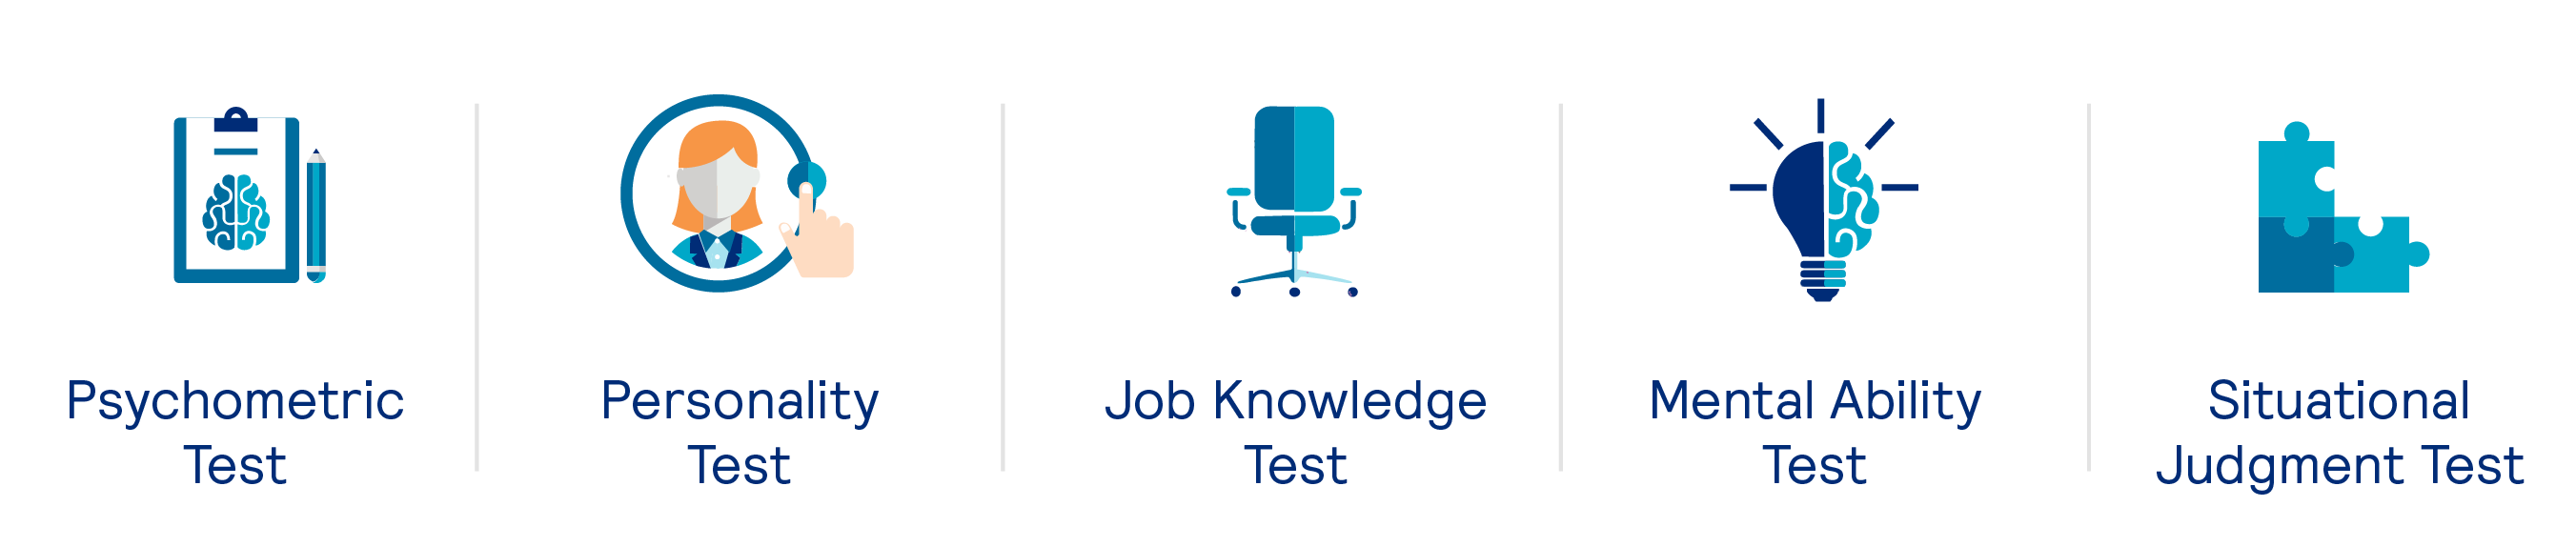 some _of_the_skill_assessment_test_difference_between_psychometric_and_skills_test